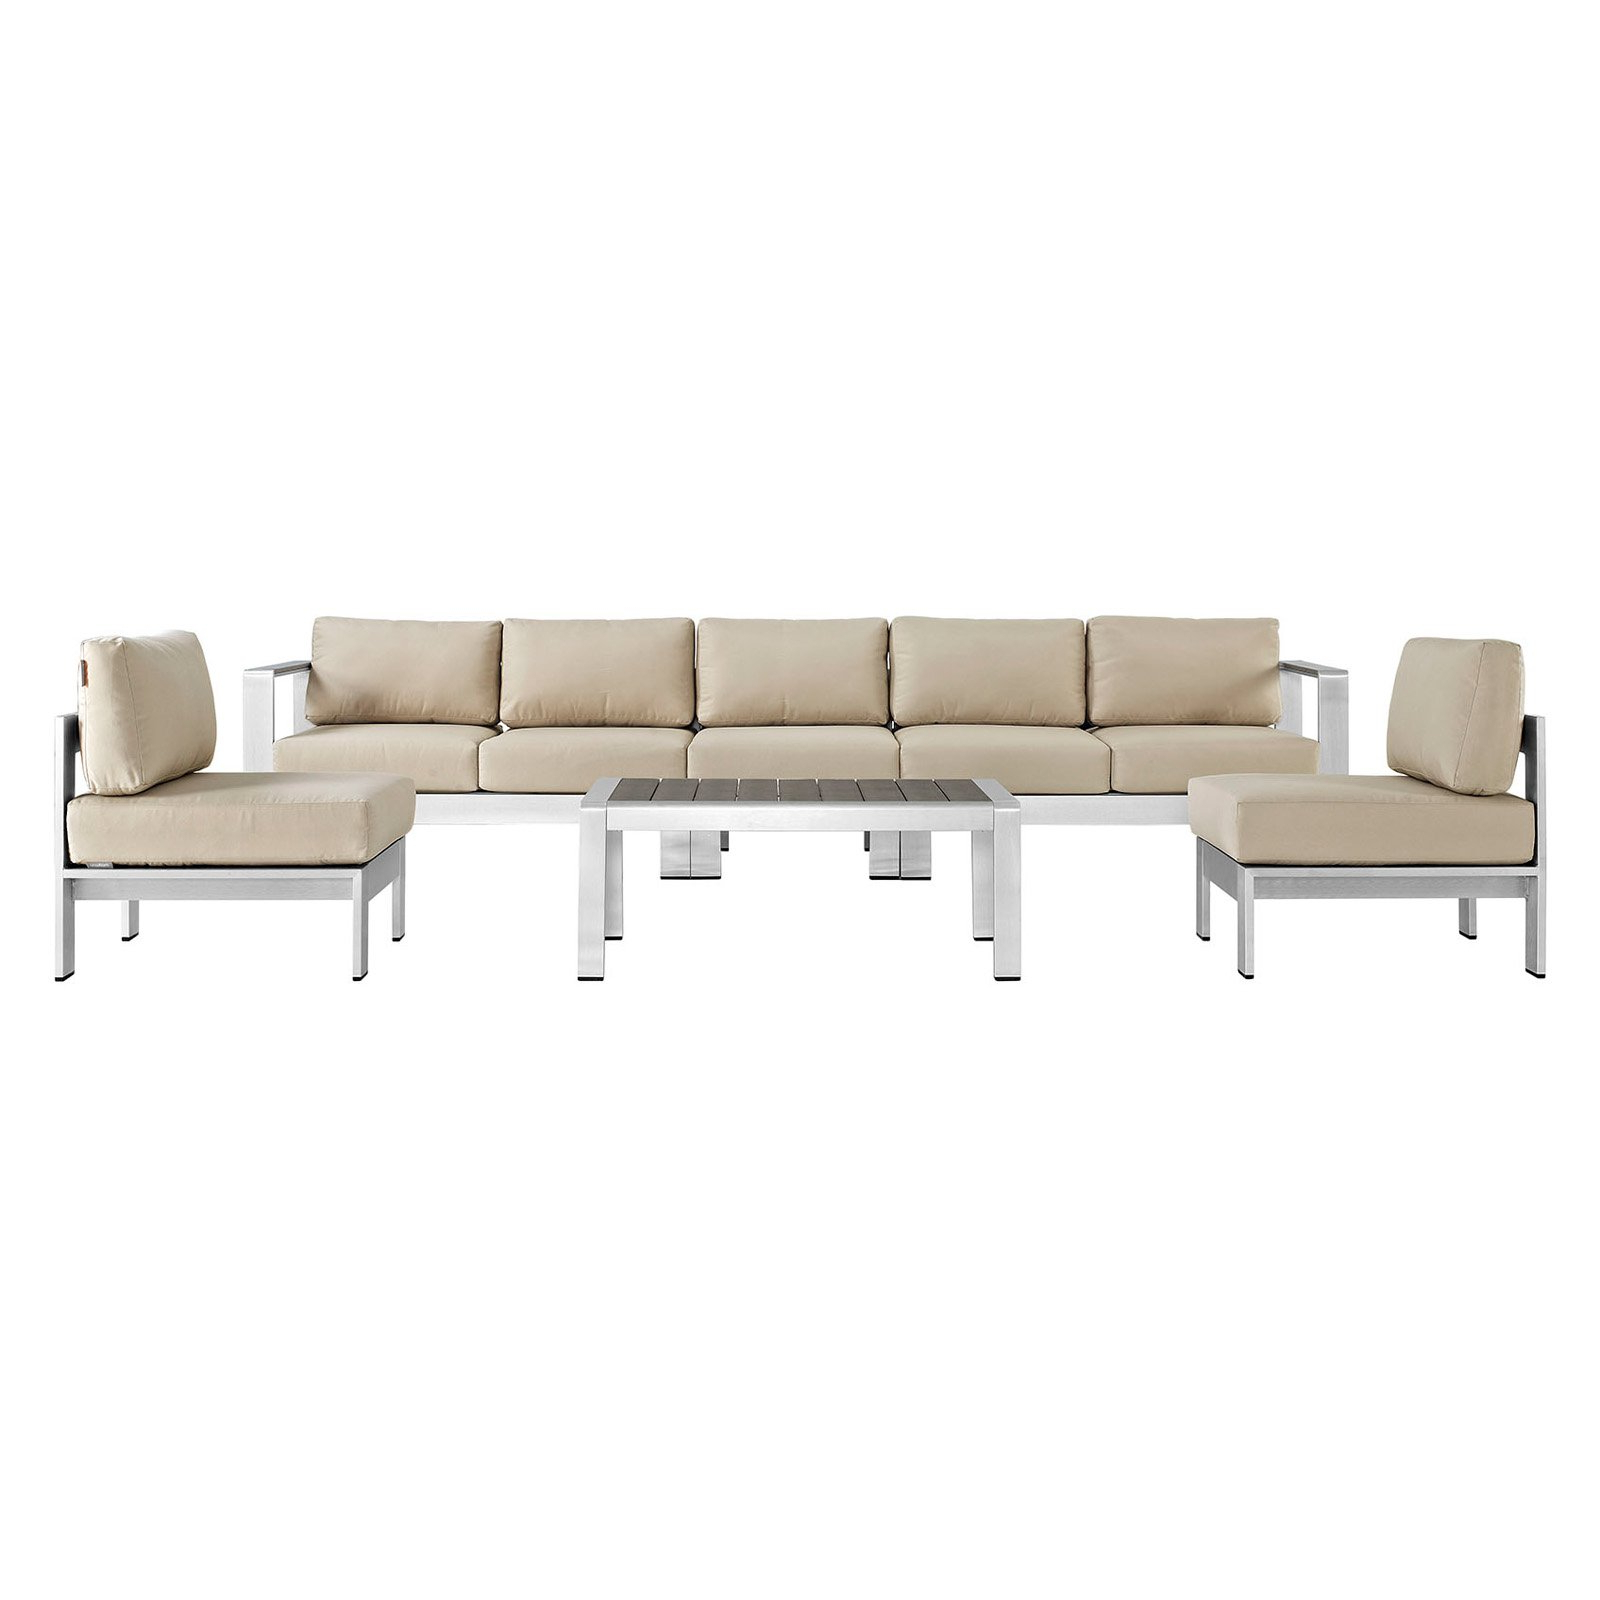 Hursey Patio Sectionals Regarding Most Up To Date Outdoor Modway Shore Aluminum 6 Piece Patio Sectional Sofa (Gallery 13 of 20)